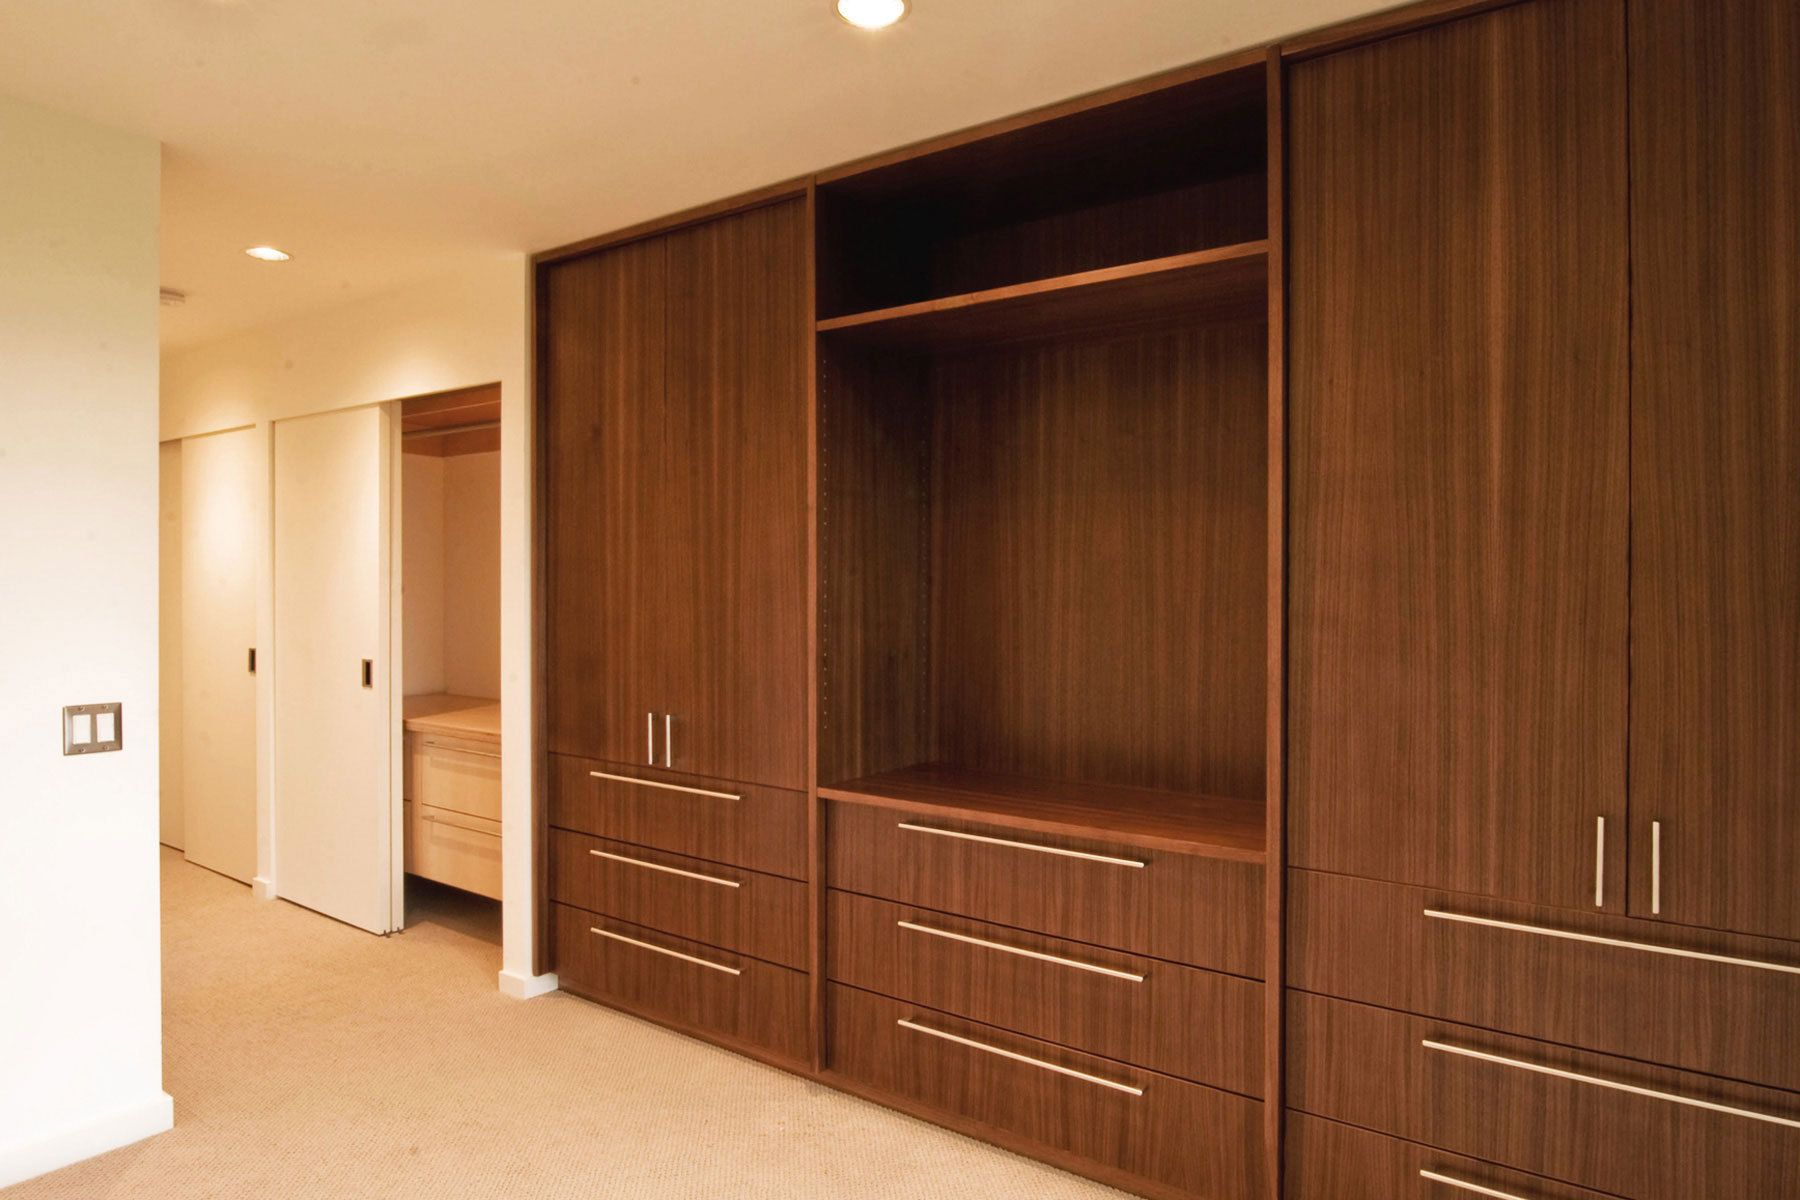 Modern Closet Cabinet Design drawers with doors above - similar to the look of the guest